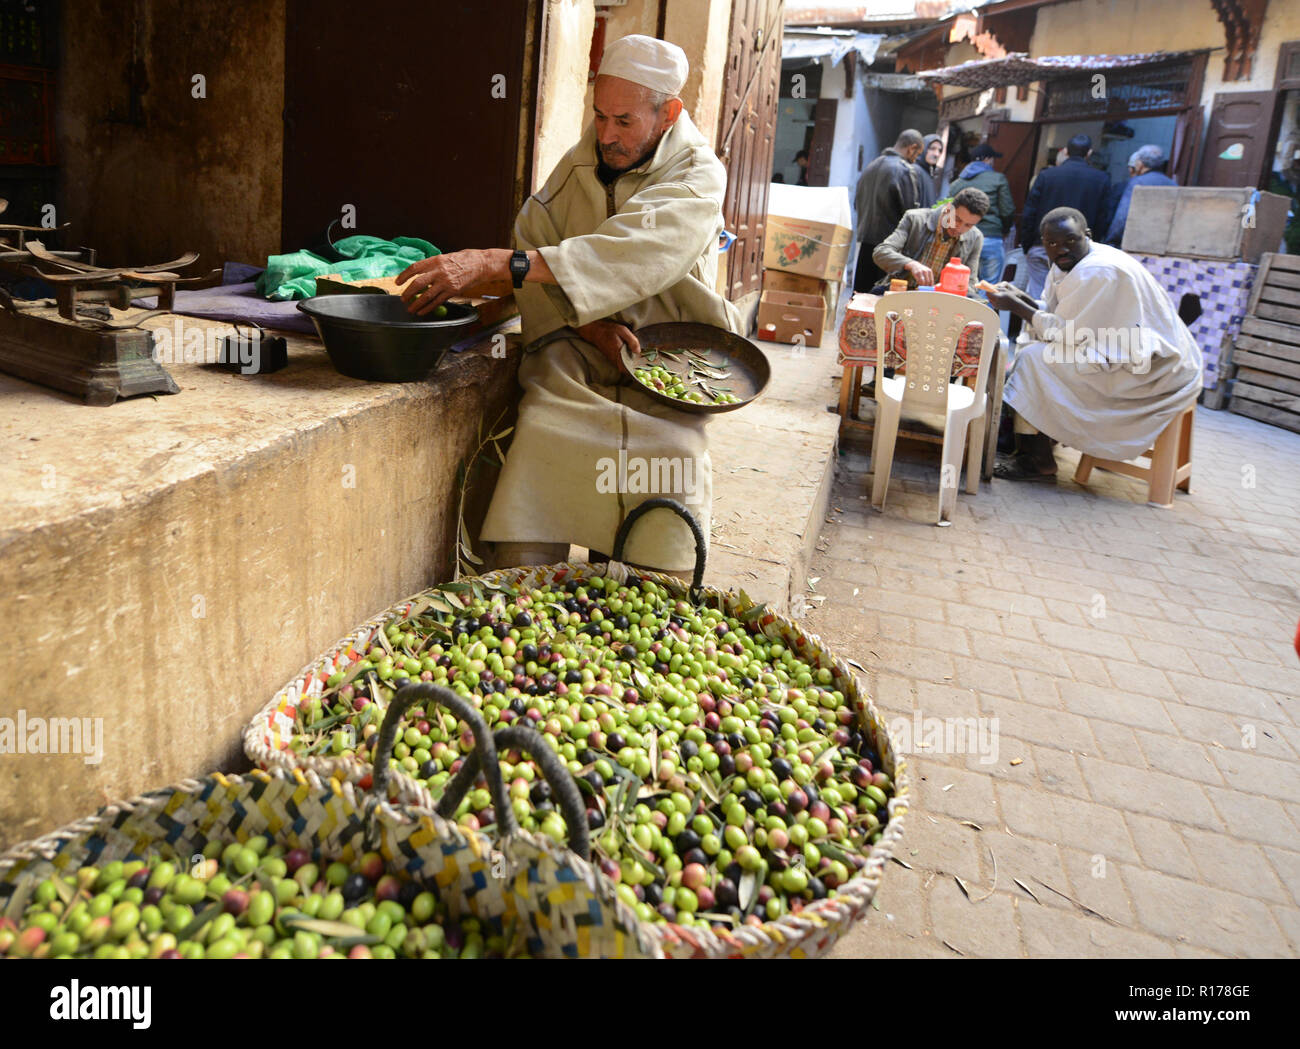 Moroccan man grading newly picked olives in the old city of Fez. - Stock Image